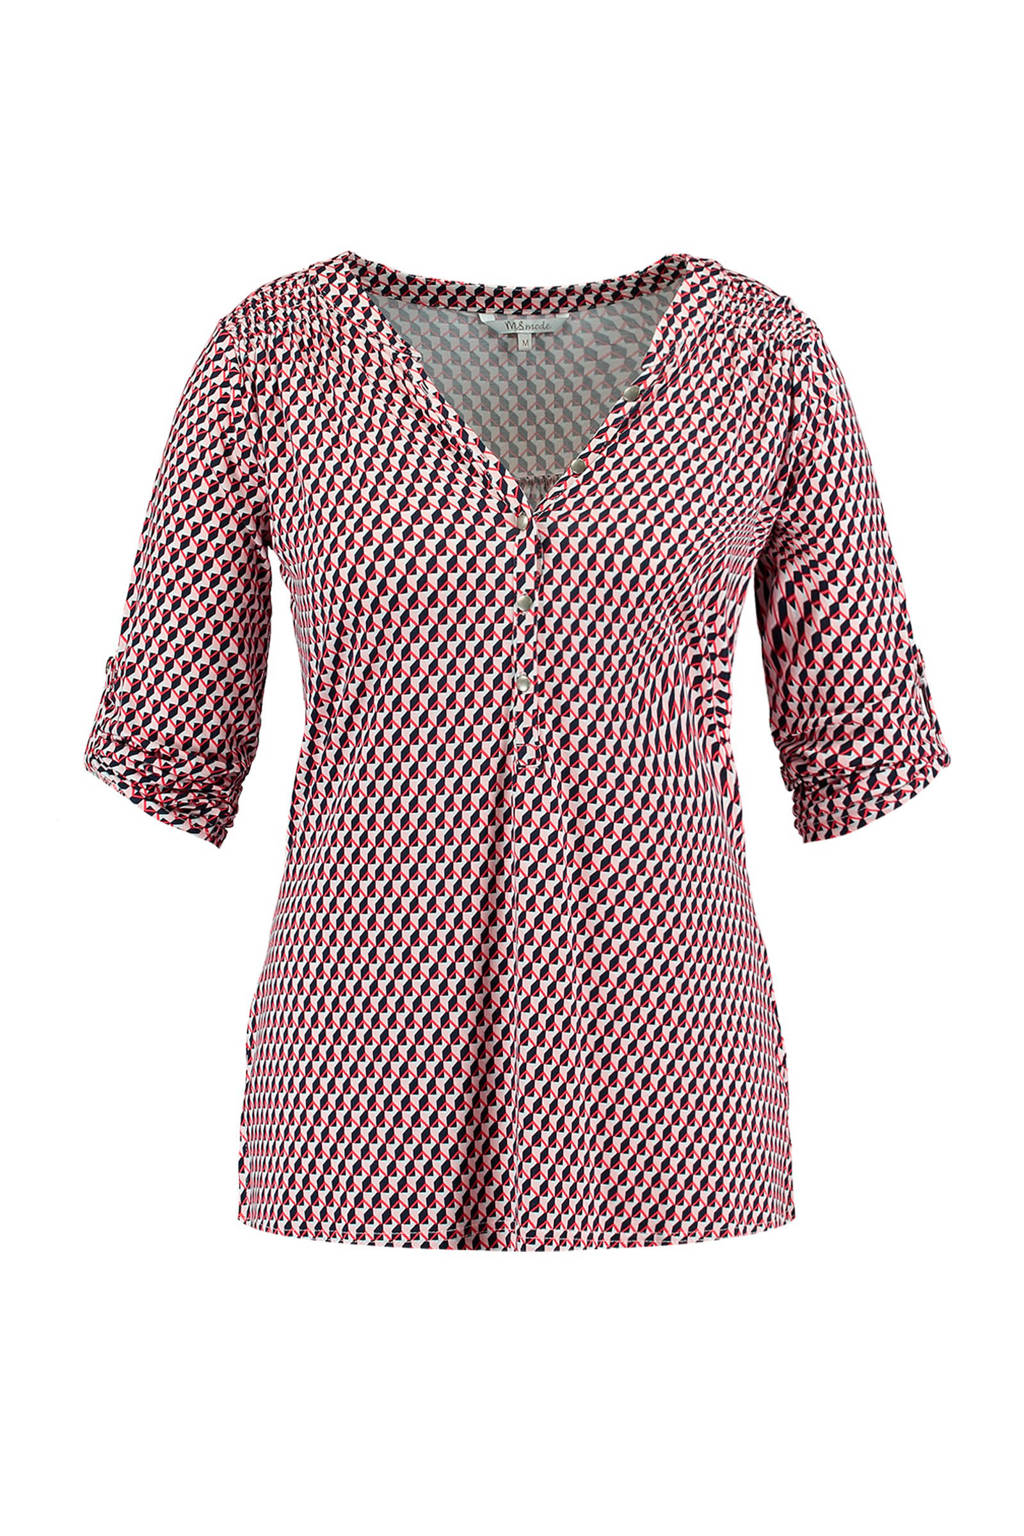 MS Mode top met all over print roze, Roze/rood